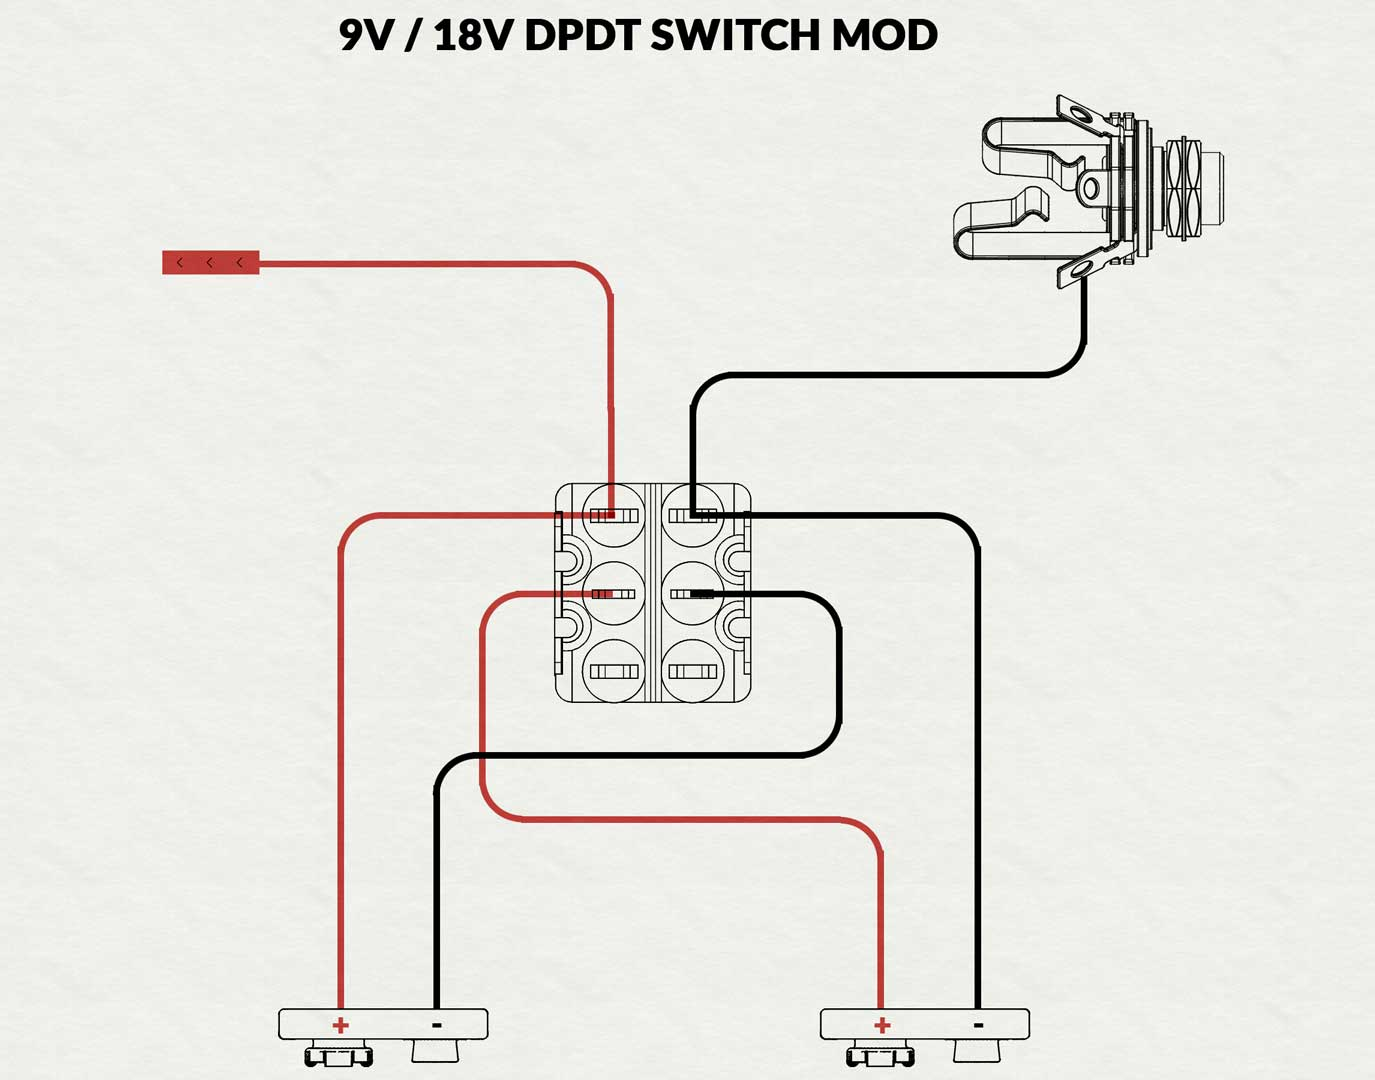 Emg 18 Volt Diagram Wiring Diagrams Box Pickup Hz H4 18v Battery Modification For Active Pickups Electric Herald